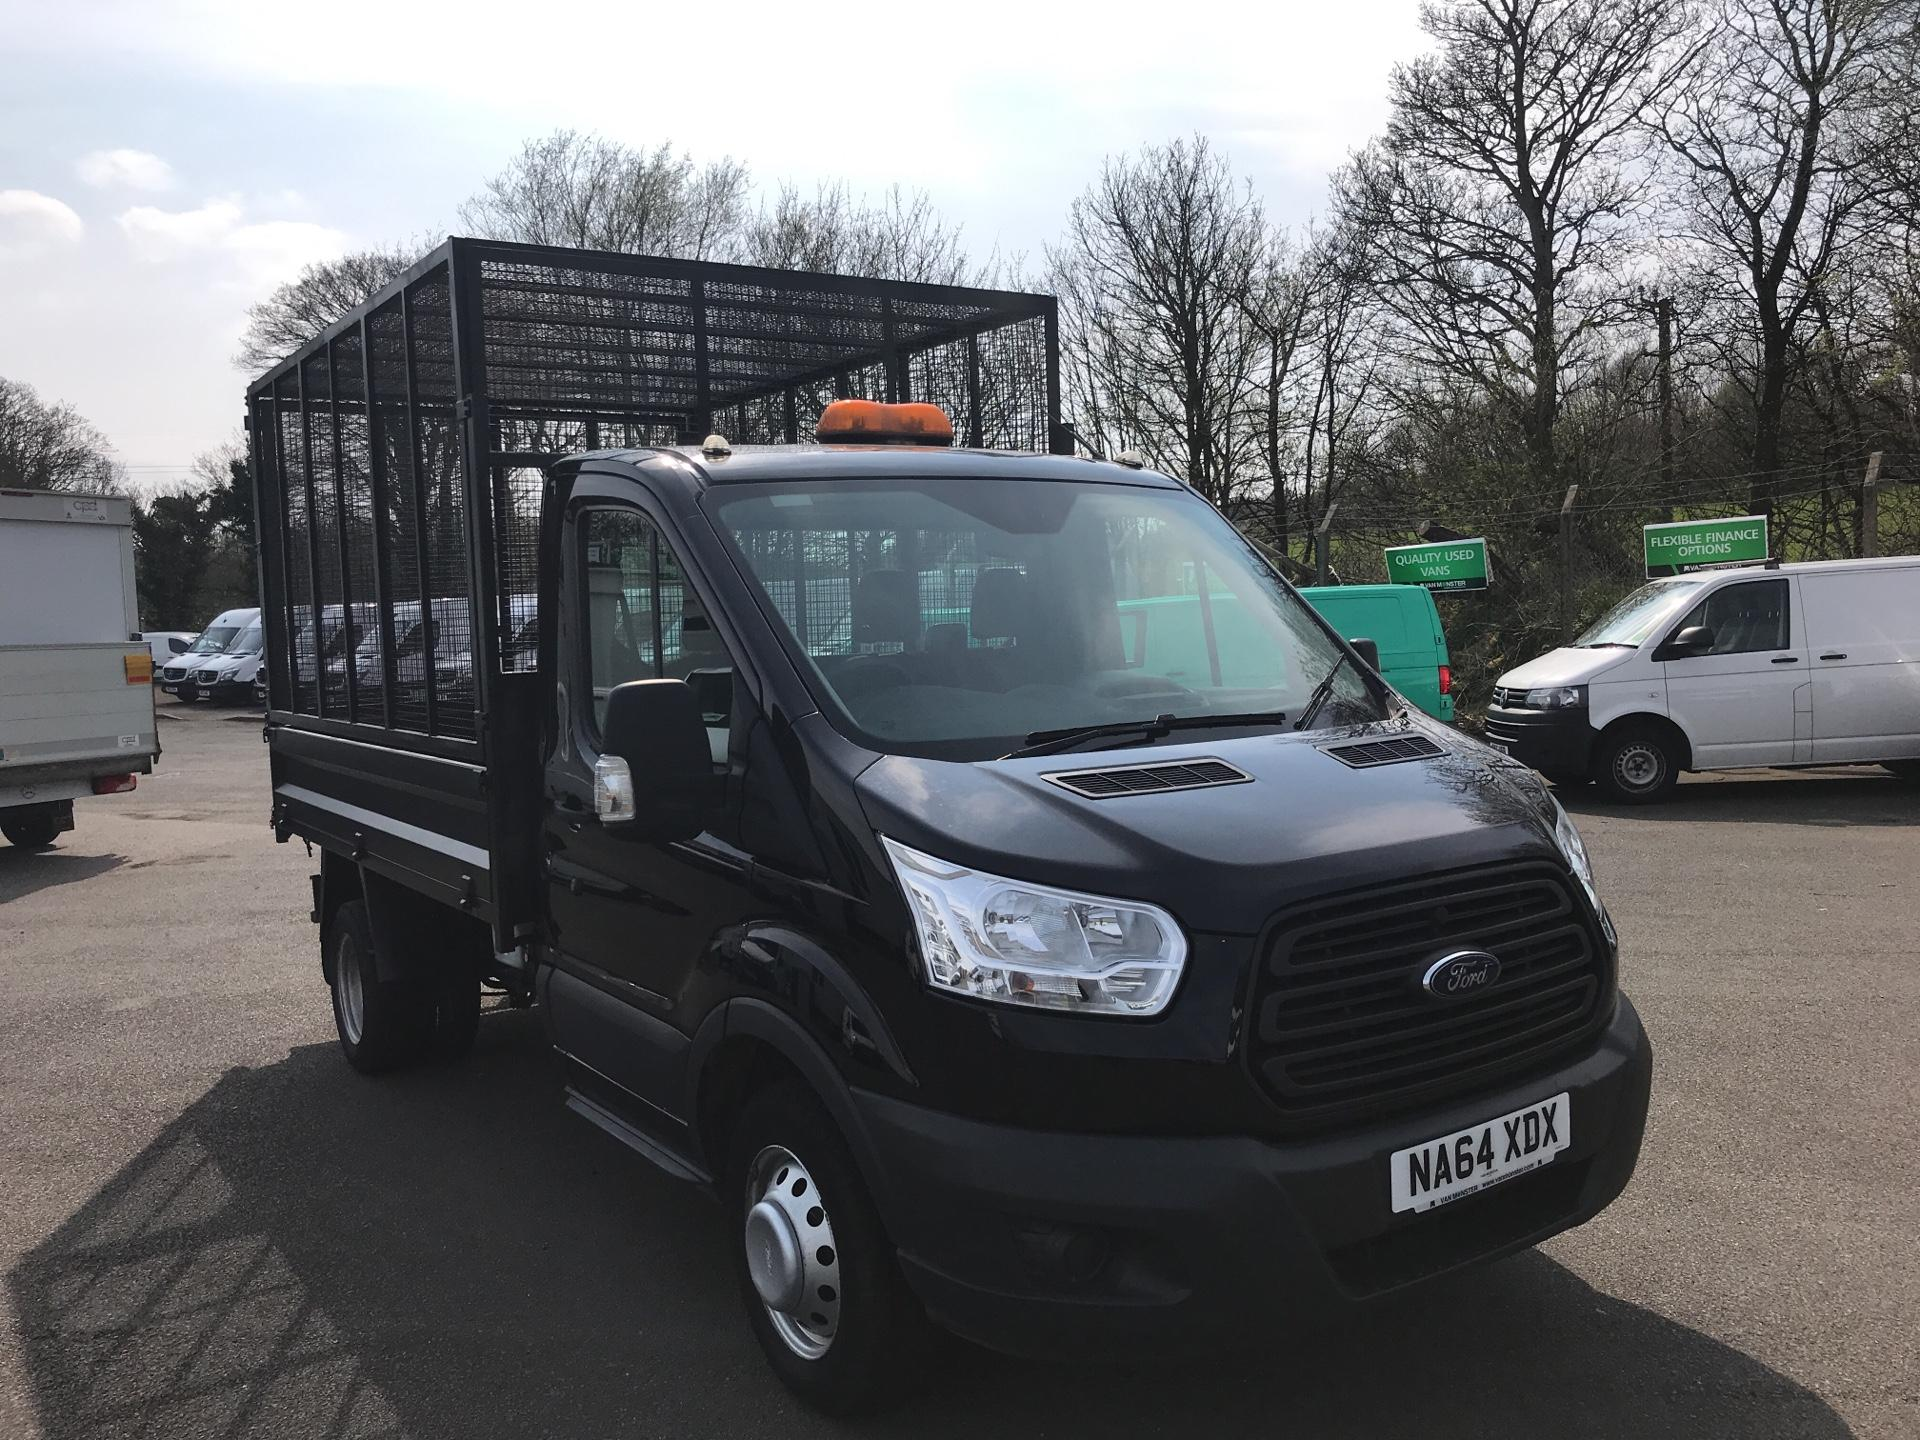 2014 Ford Transit  350 L2 SINGLE CAB TIPPER 100PS EURO 5 (NA64XDX)